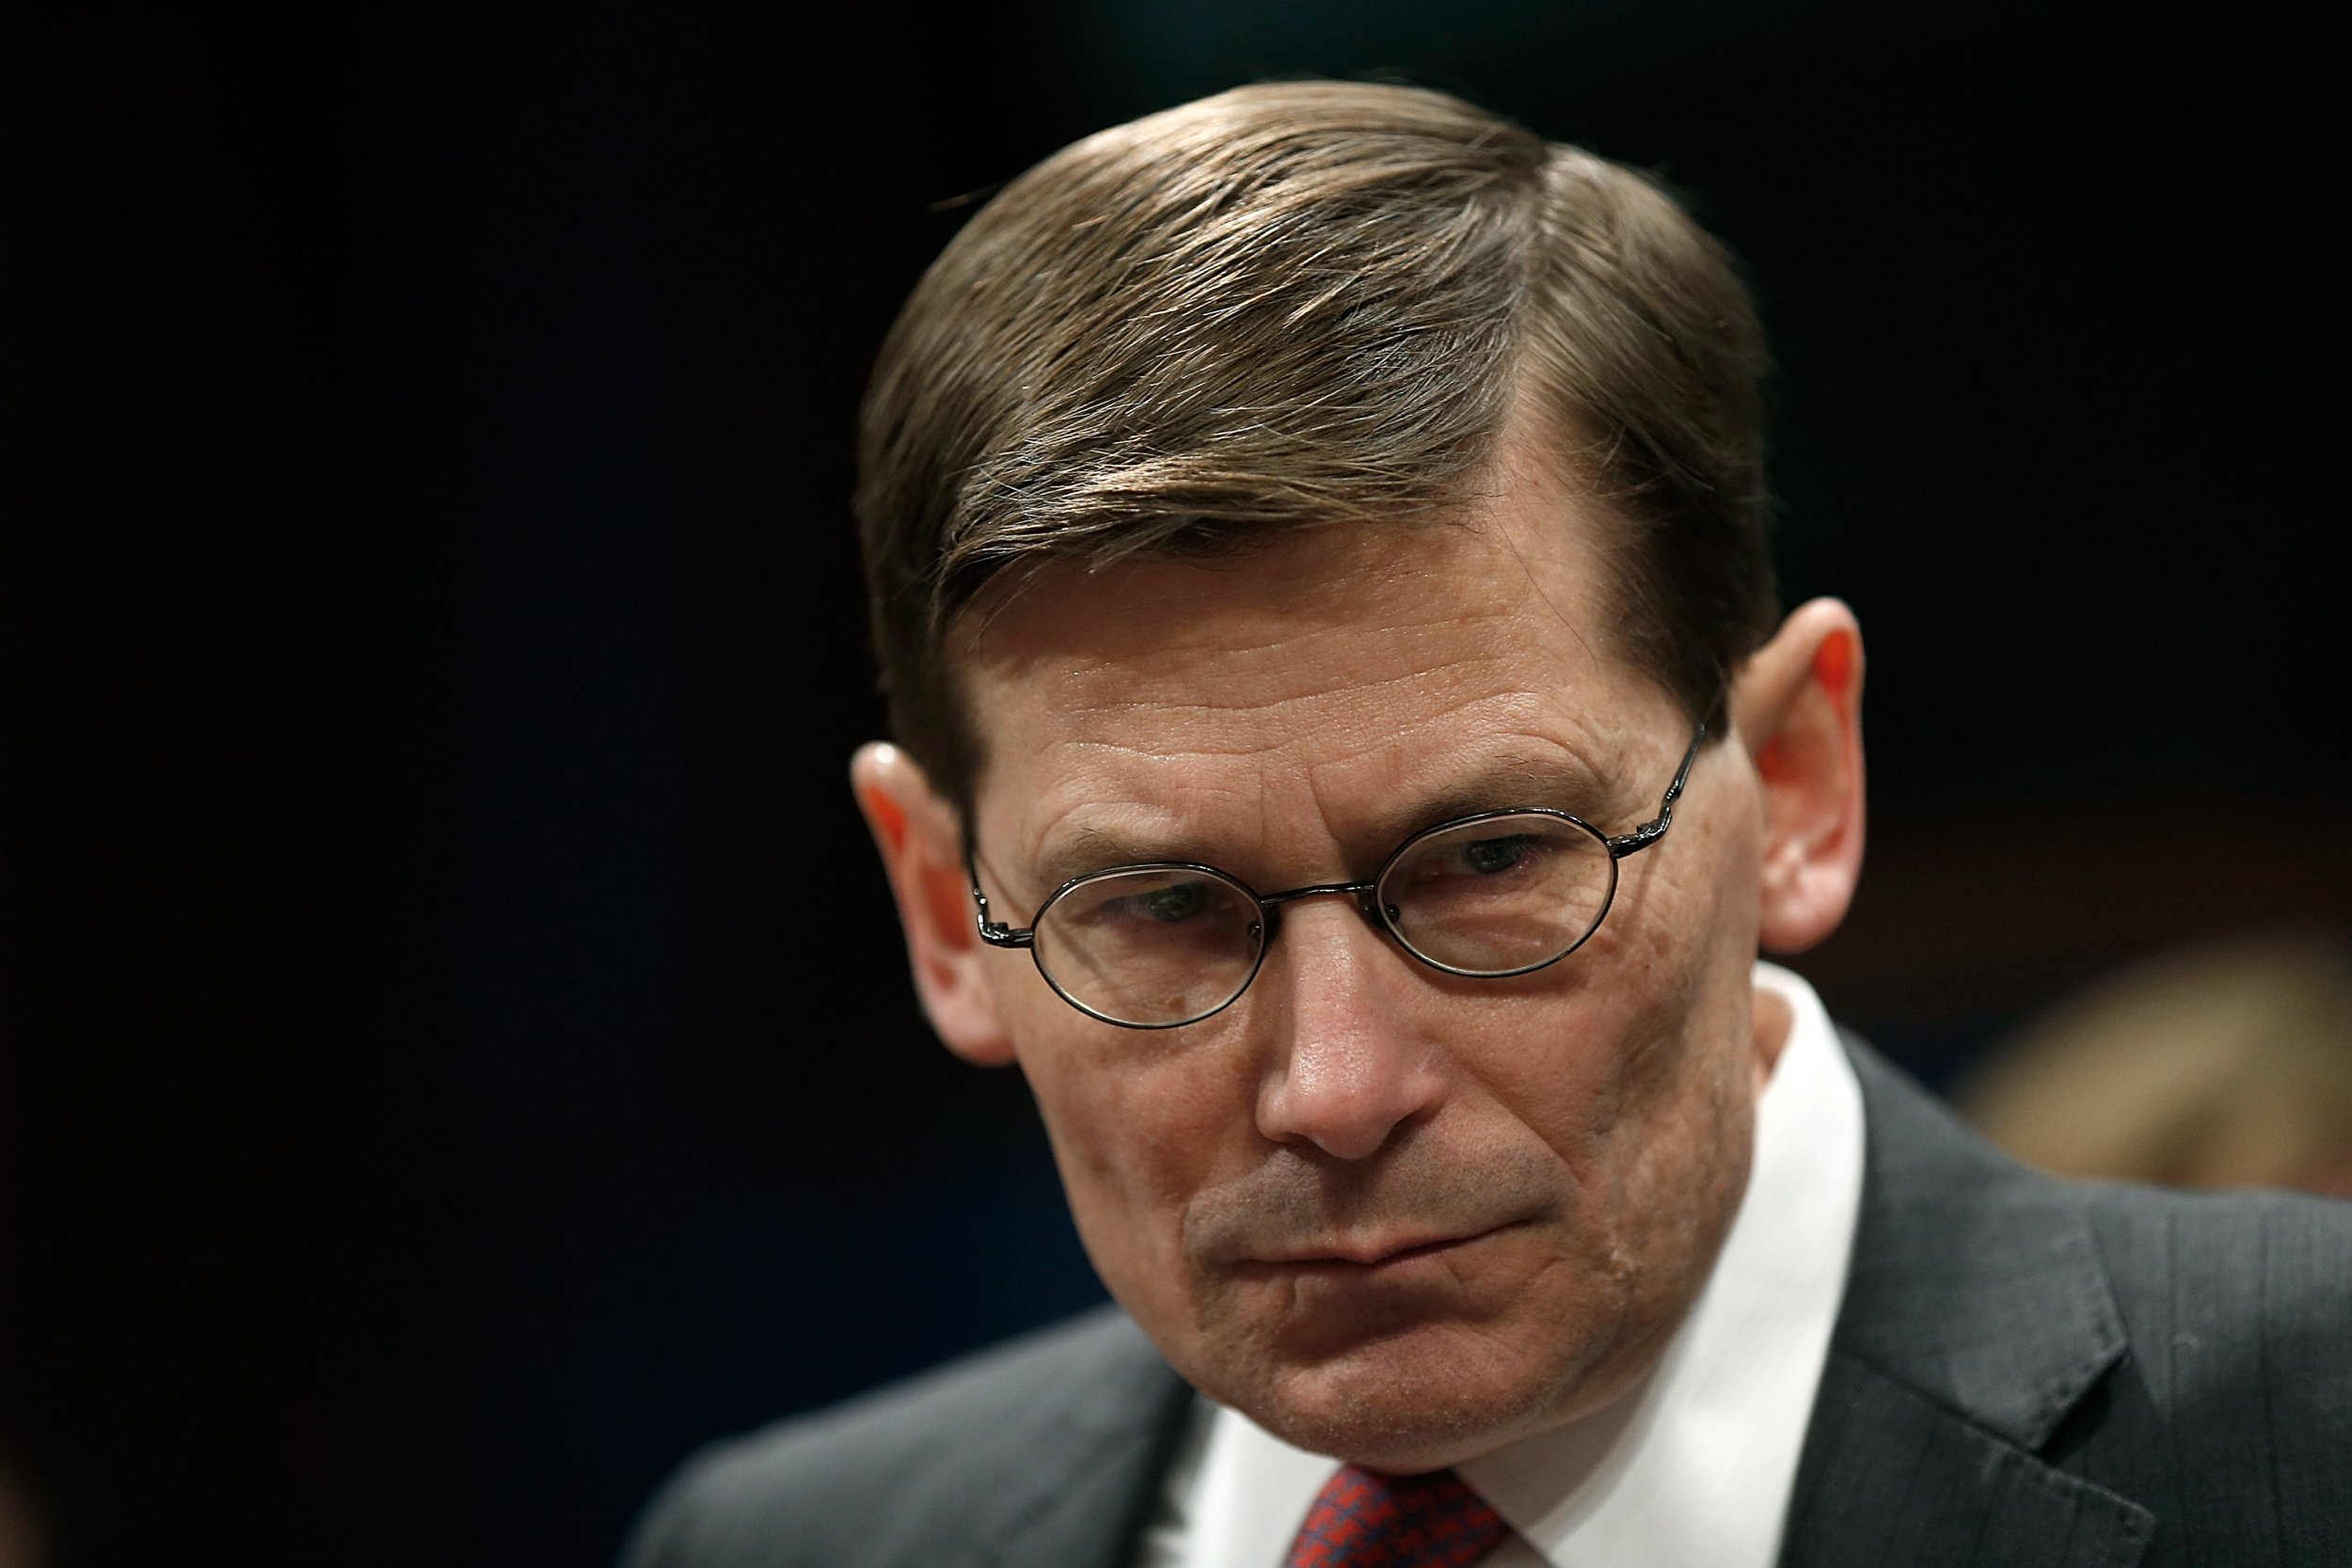 Ex-CIA chief says U.S. intelligence agencies failed to anticipate Russian election hacking